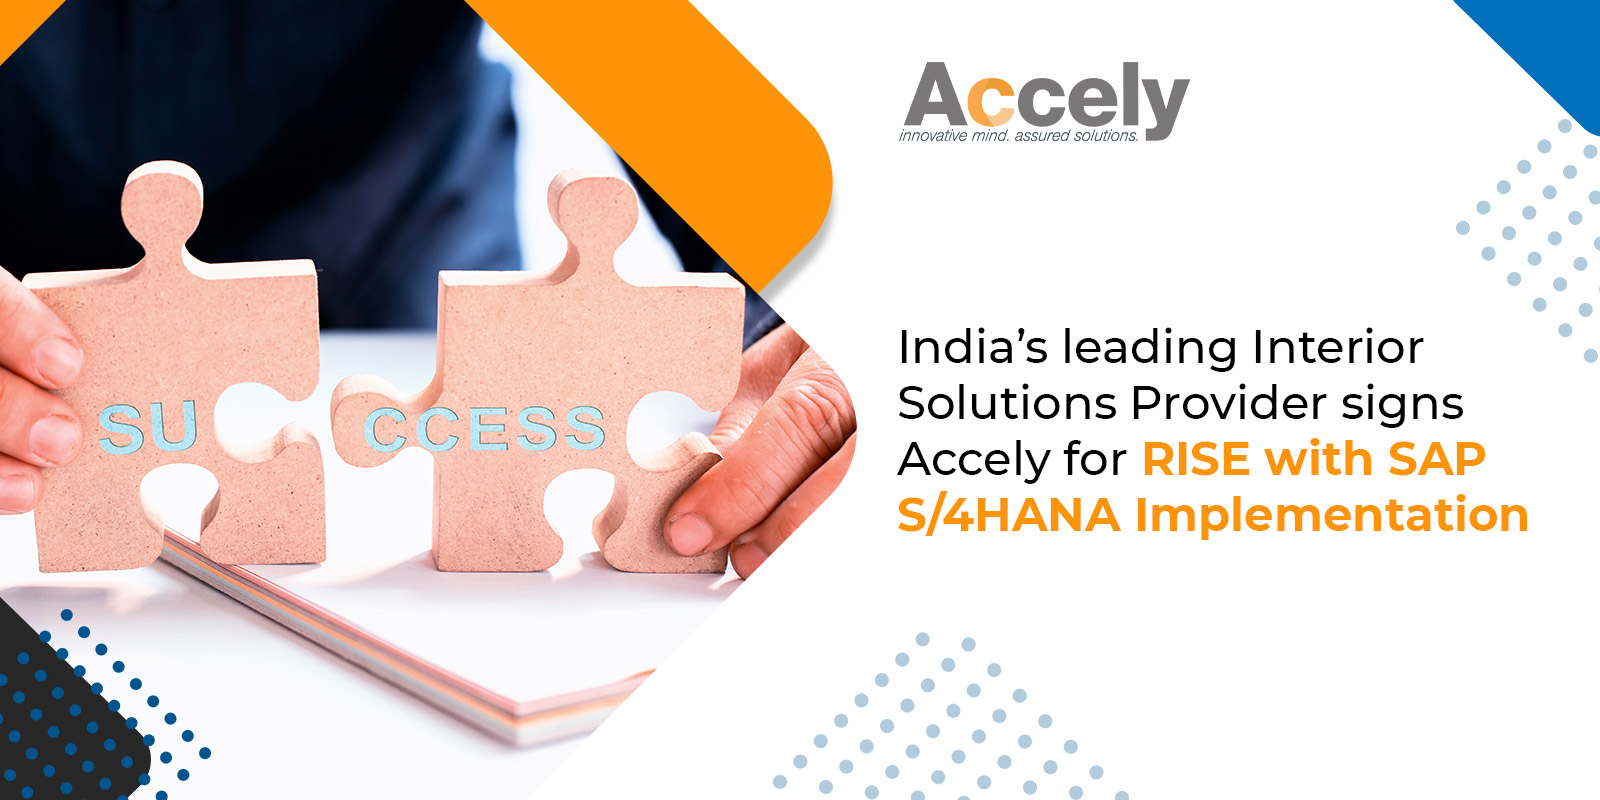 India's leading Interior Solutions Provider signs Accely for RISE with SAP S/4HANA Implementation